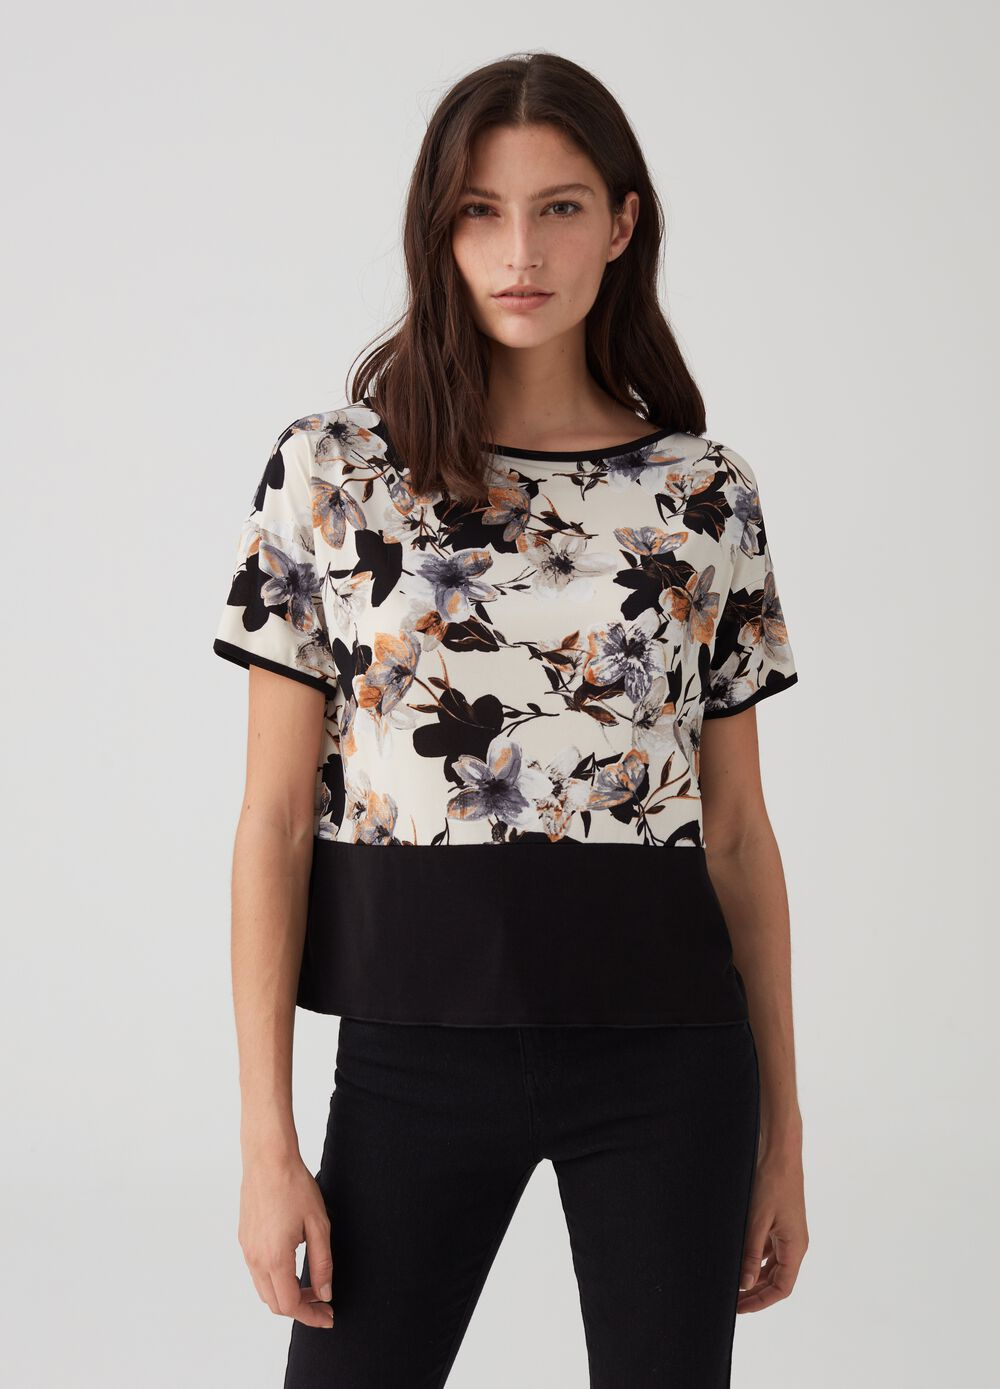 Short-sleeved top with floral pattern